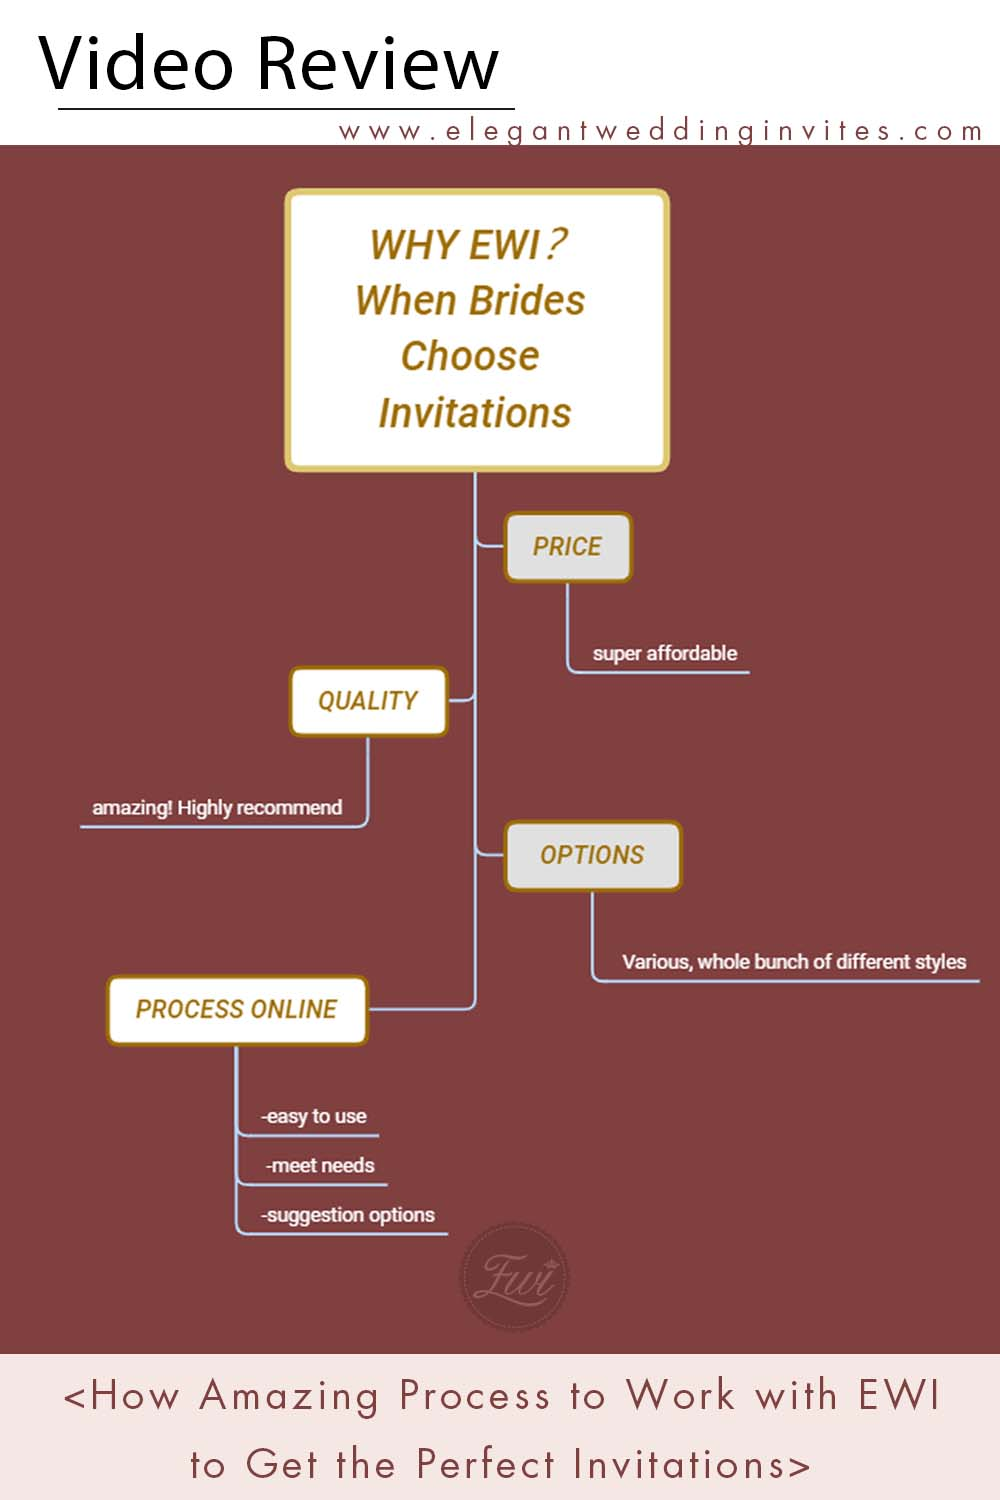 Video Review How Amazing Process to Work with EWI to Get the Perfect Invitations